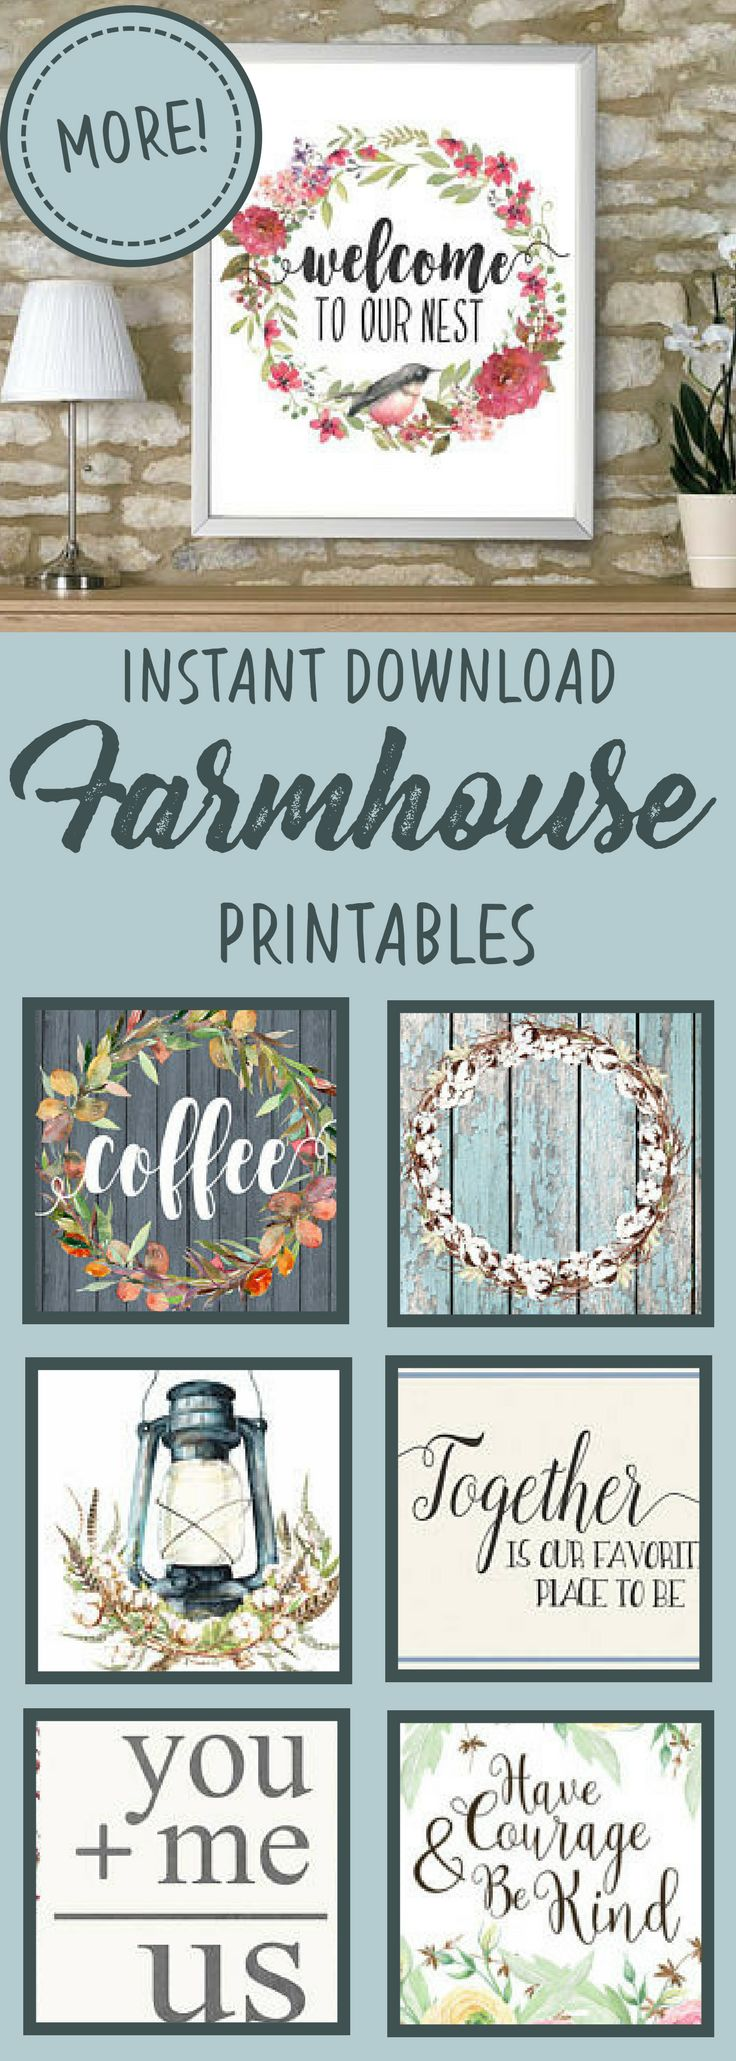 2092 best printables images on Pinterest | Stained glass designs ...